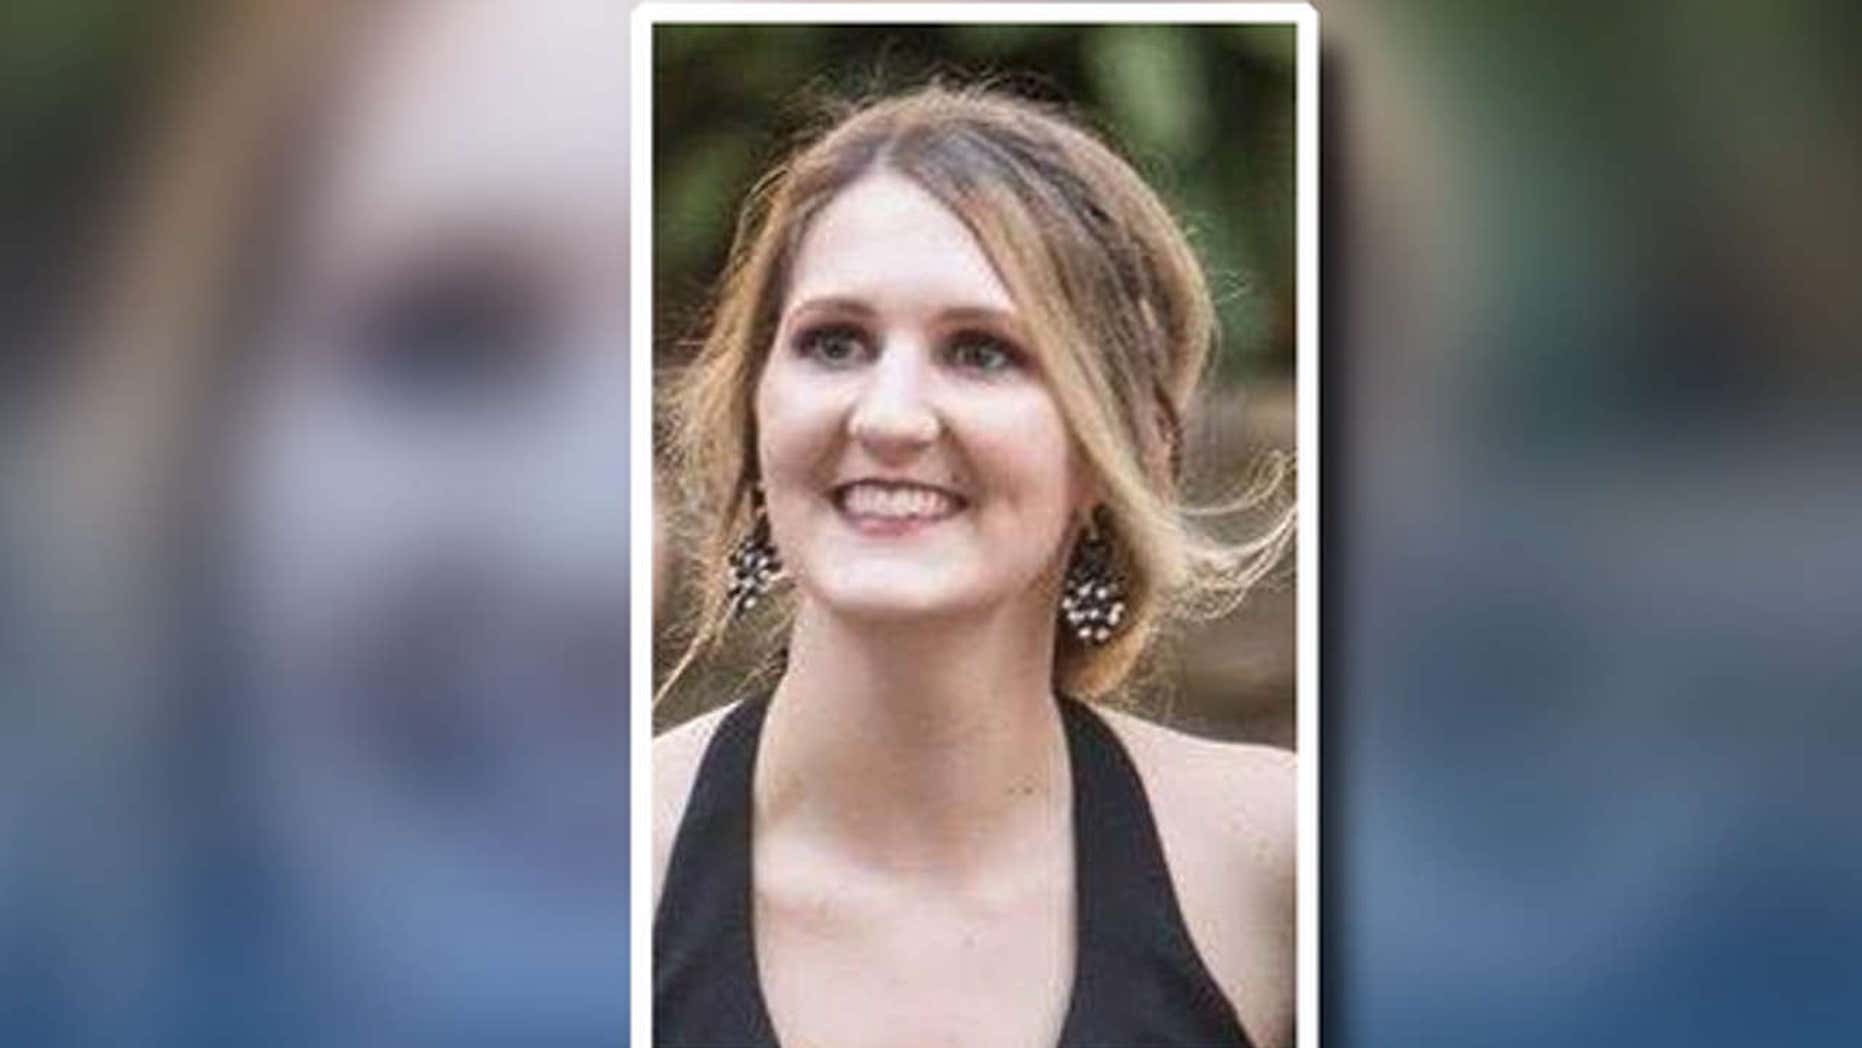 Authorities in Texas said Wednesday there were no signs of forced entry into a woman's garage apartment where she was found strangled to death in her bathroom.